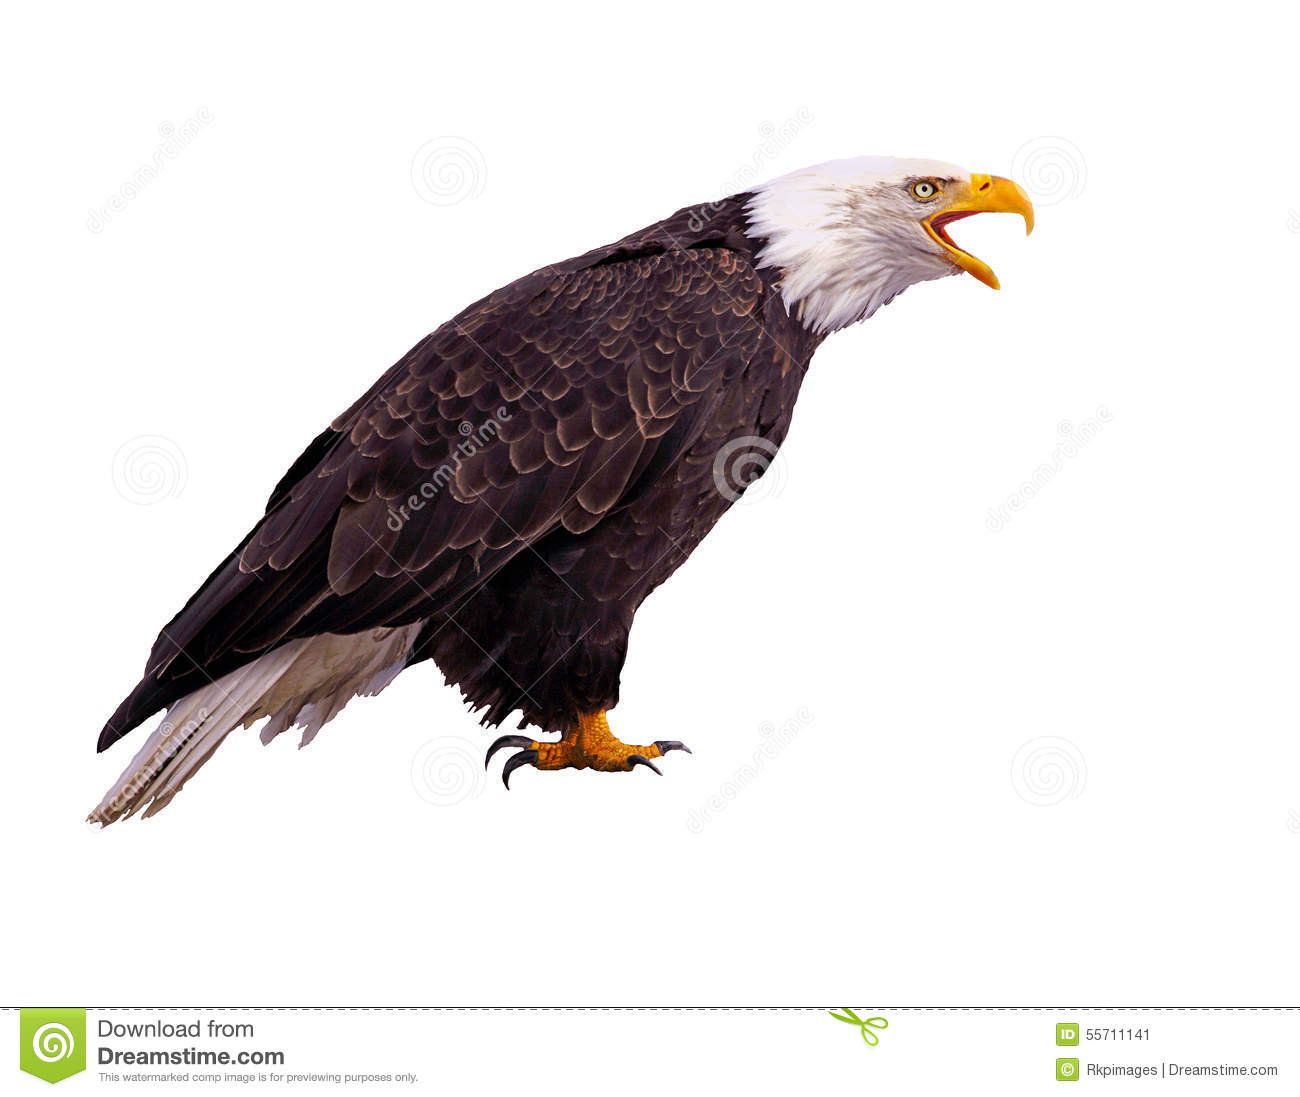 Bald Eagle calling, profile view on white background.